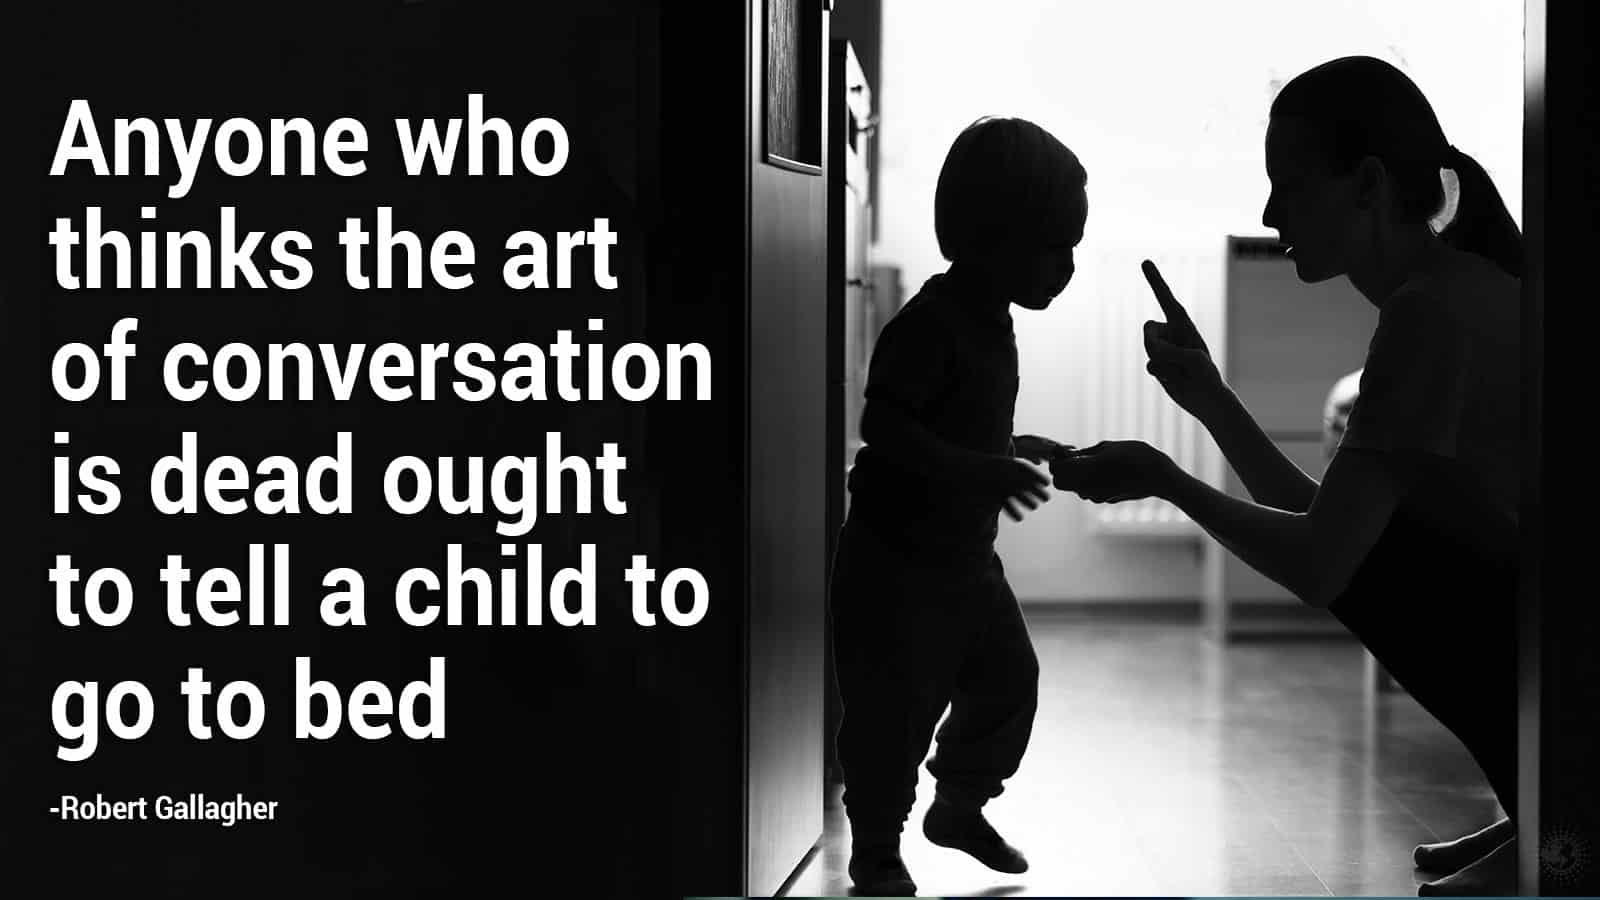 talking to kids quote